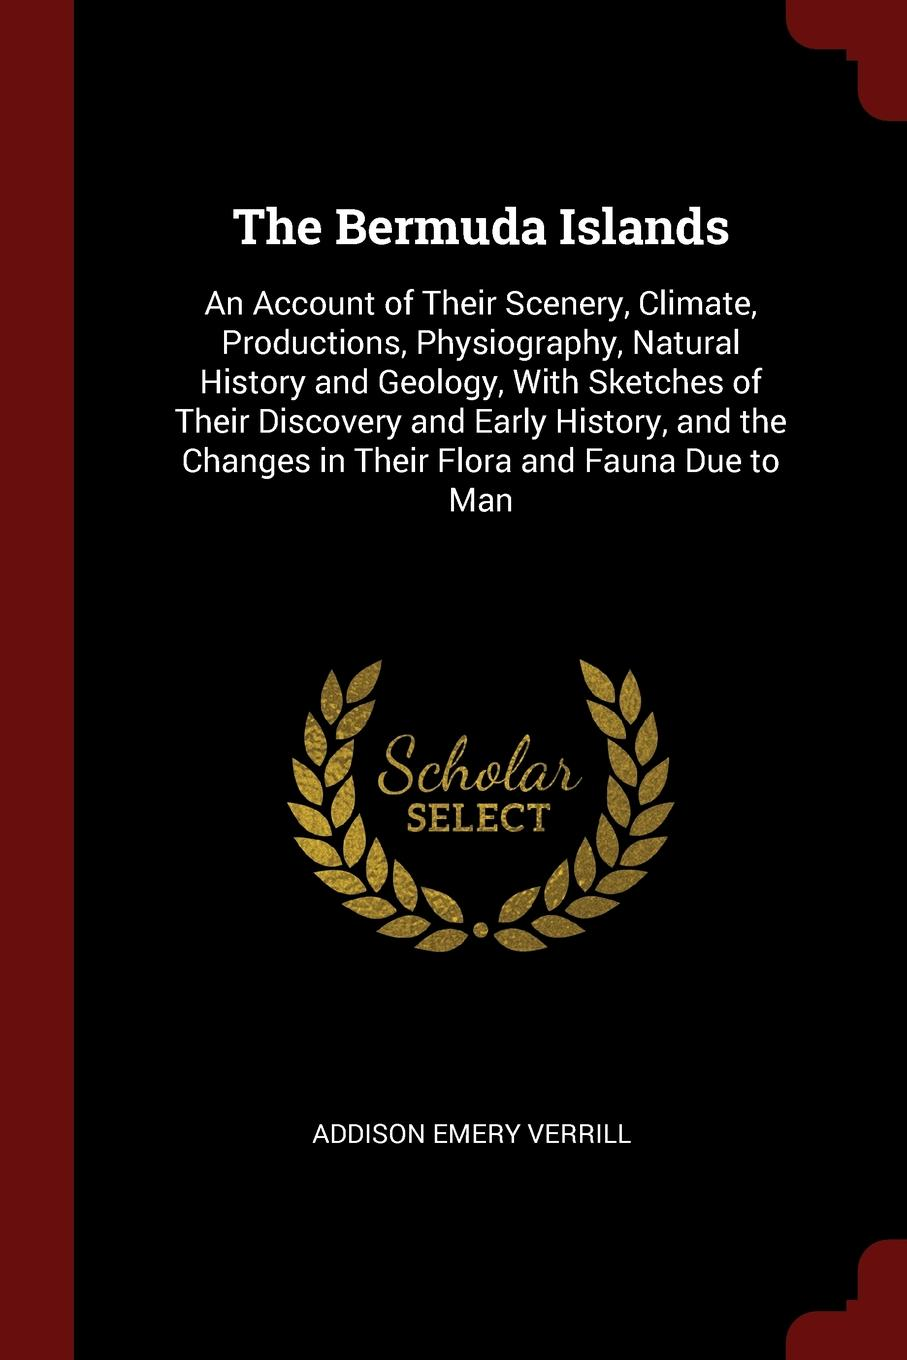 The Bermuda Islands. An Account of Their Scenery, Climate, Productions, Physiography, Natural History and Geology, With Sketches of Their Discovery and Early History, and the Changes in Their Flora and Fauna Due to Man